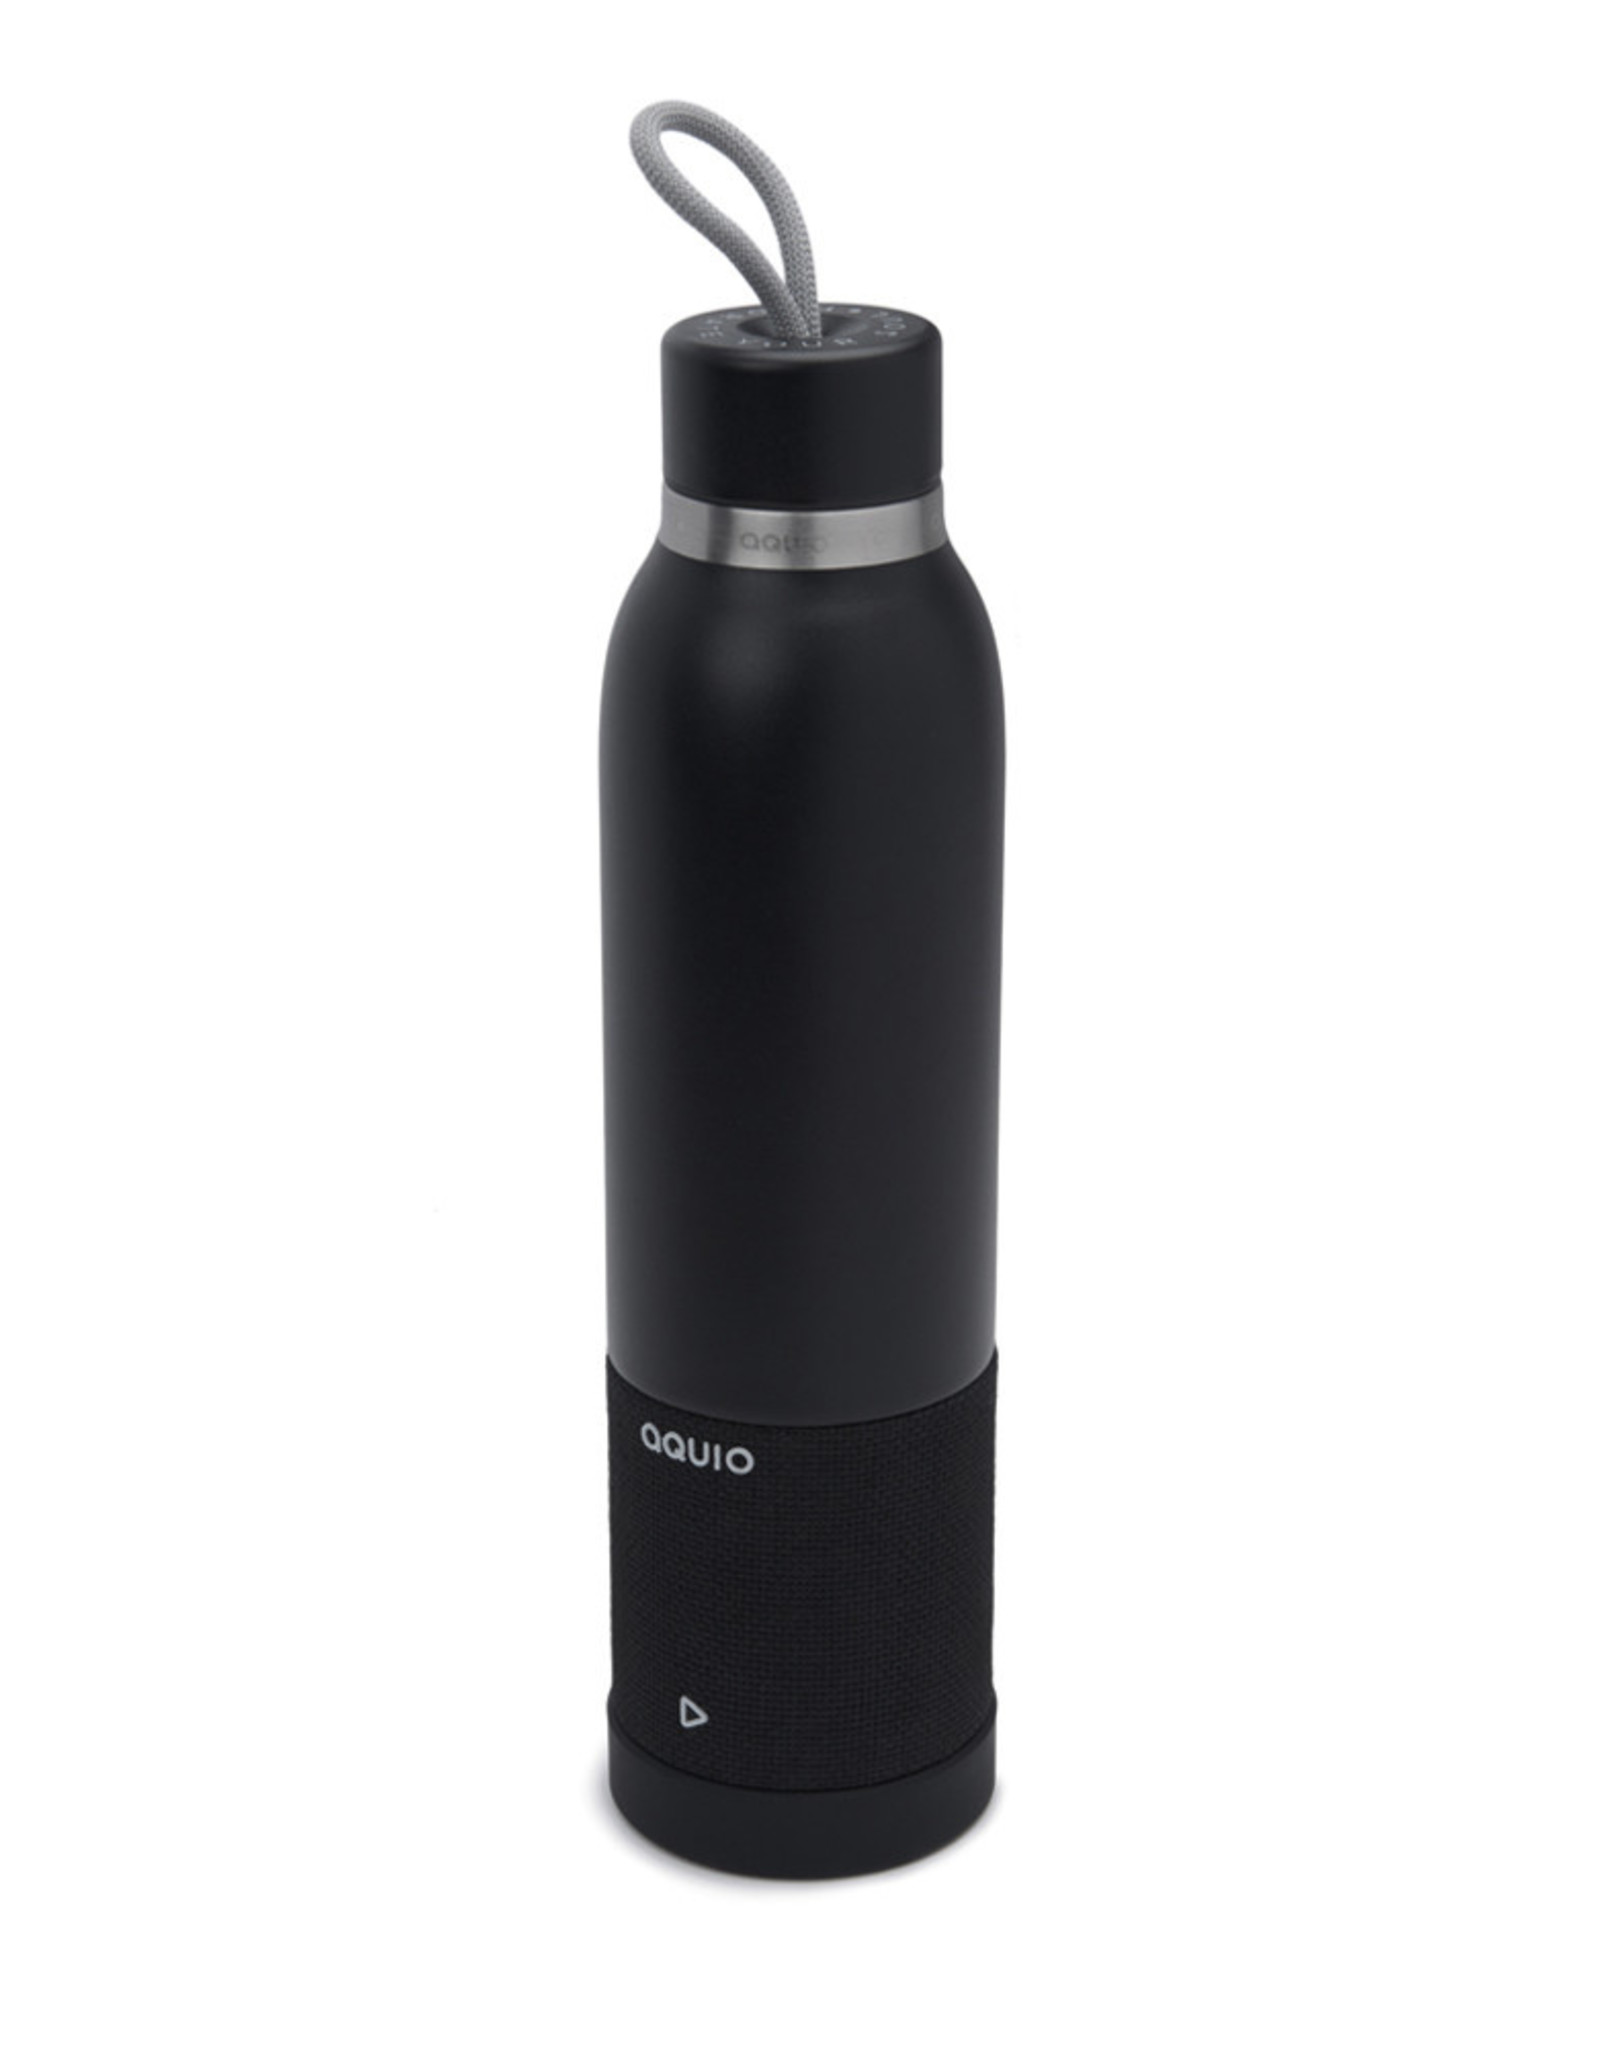 iHome iHome - Steel Insulated Bottle with Rechargeable Bluetooth Speaker Midnight 115-1951